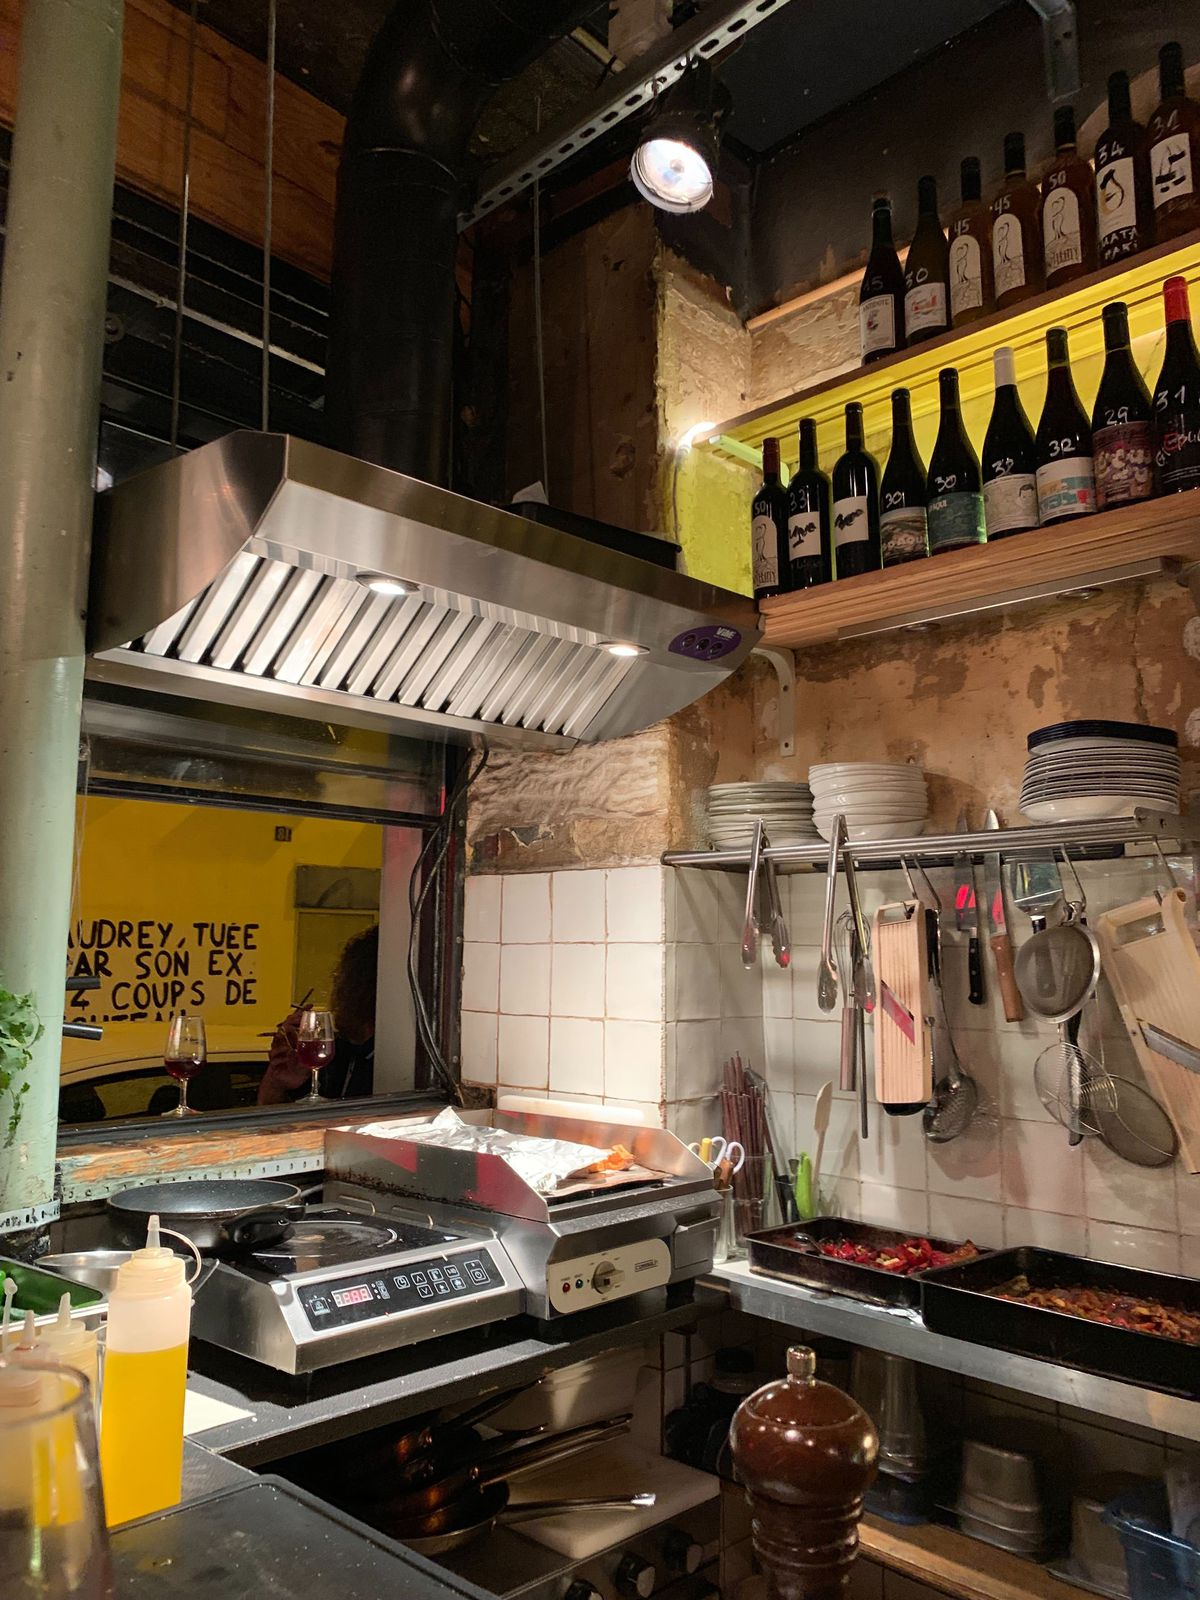 The small kitchen of a wine bar in Paris.